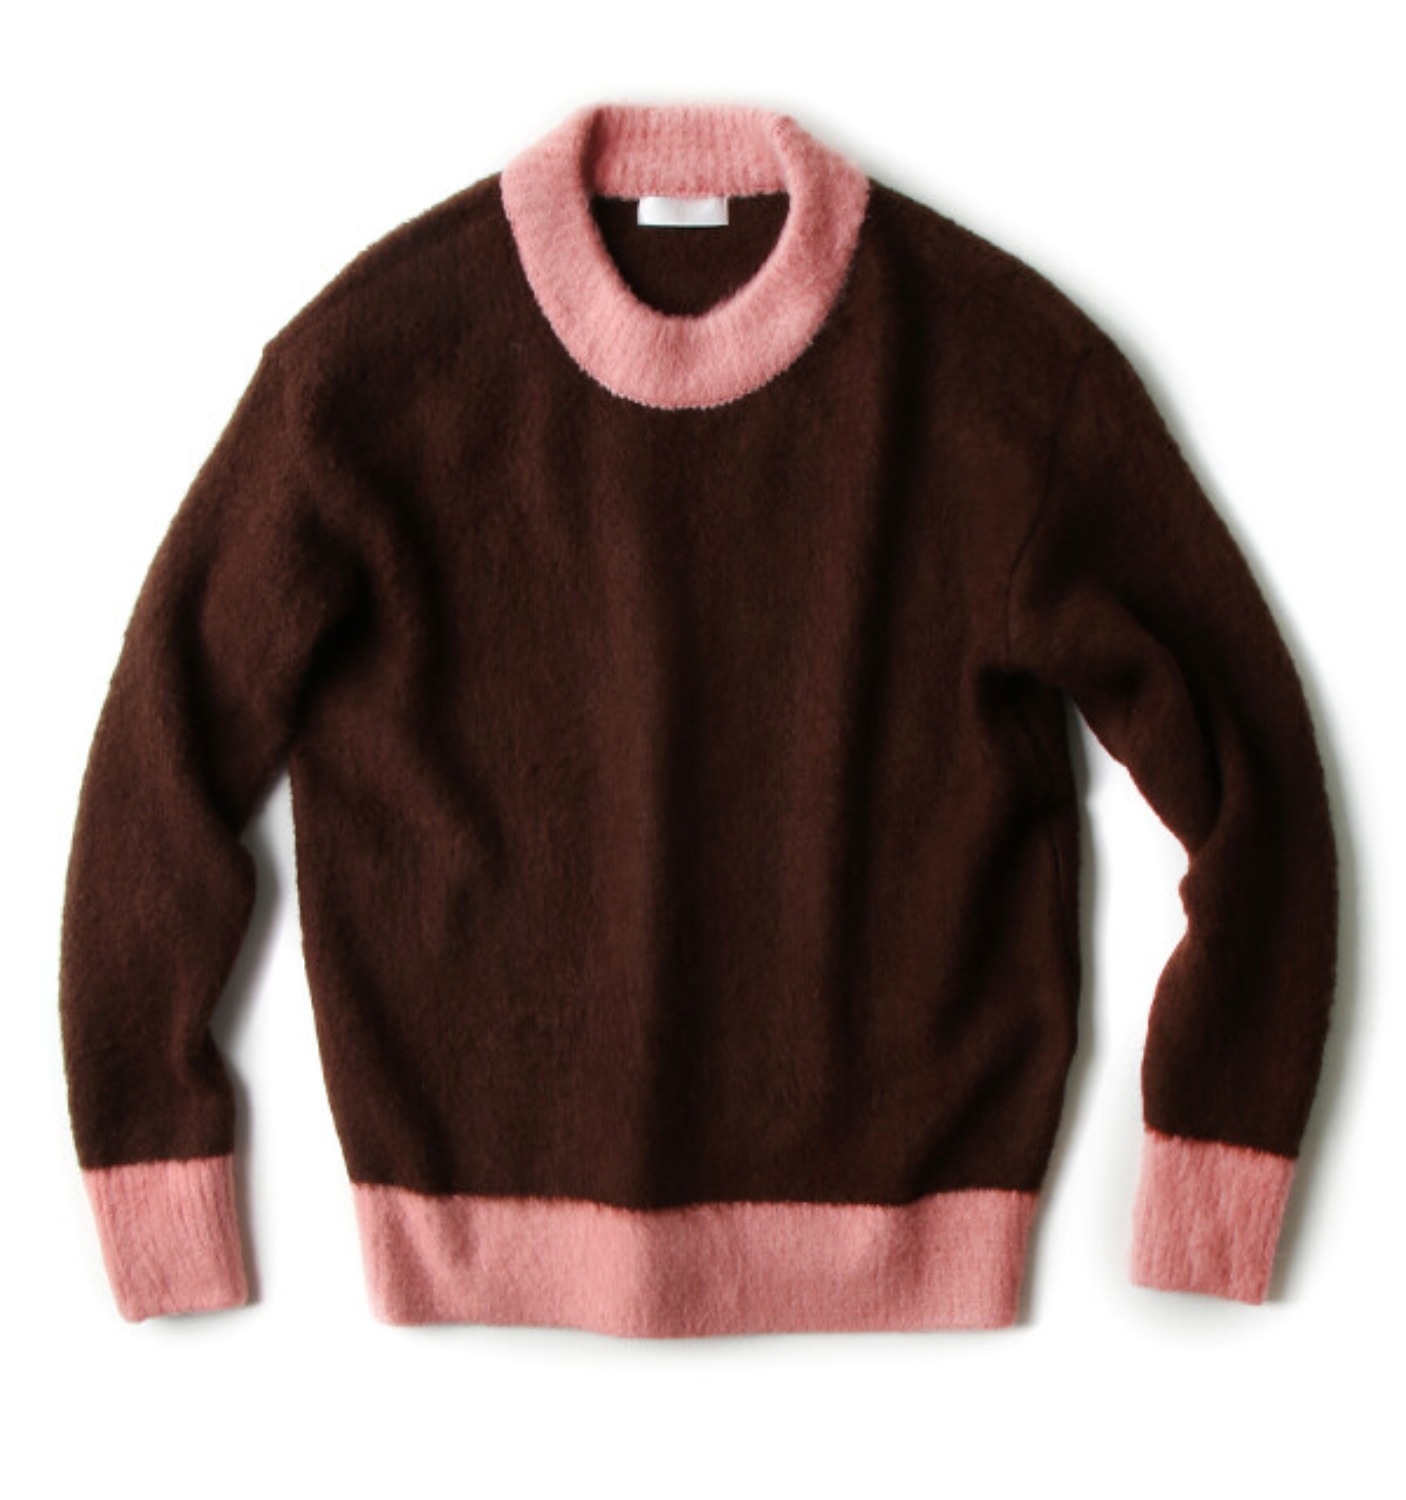 COLOR BLOCK PULLOVER KNIT BROWN/PINK